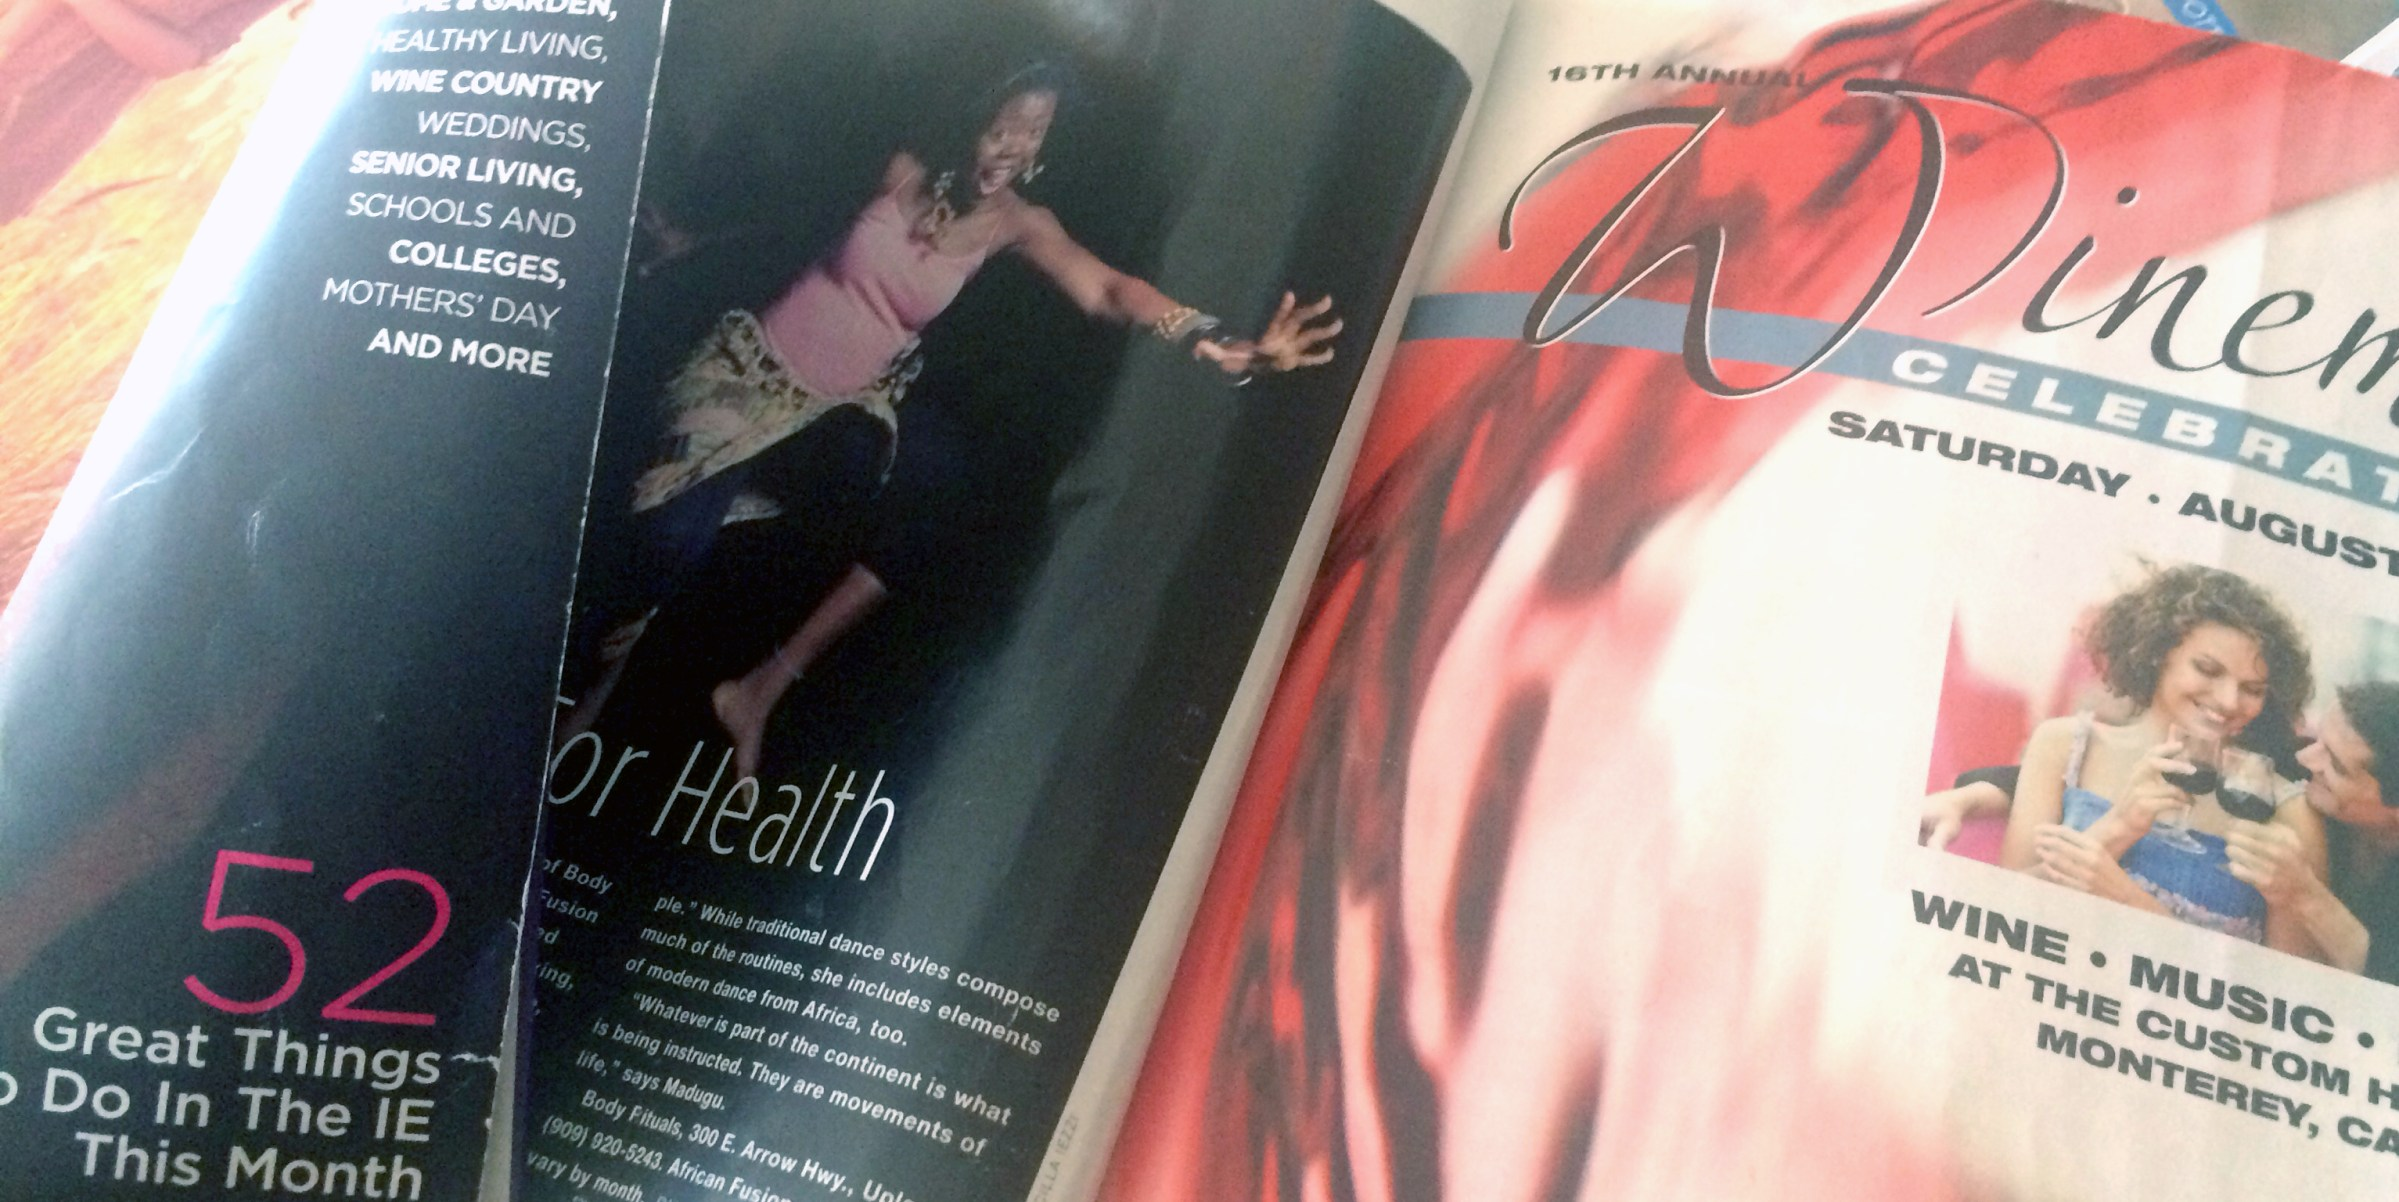 Passion Barre's 'Dami featured in Inland Empire Magazine, 2008